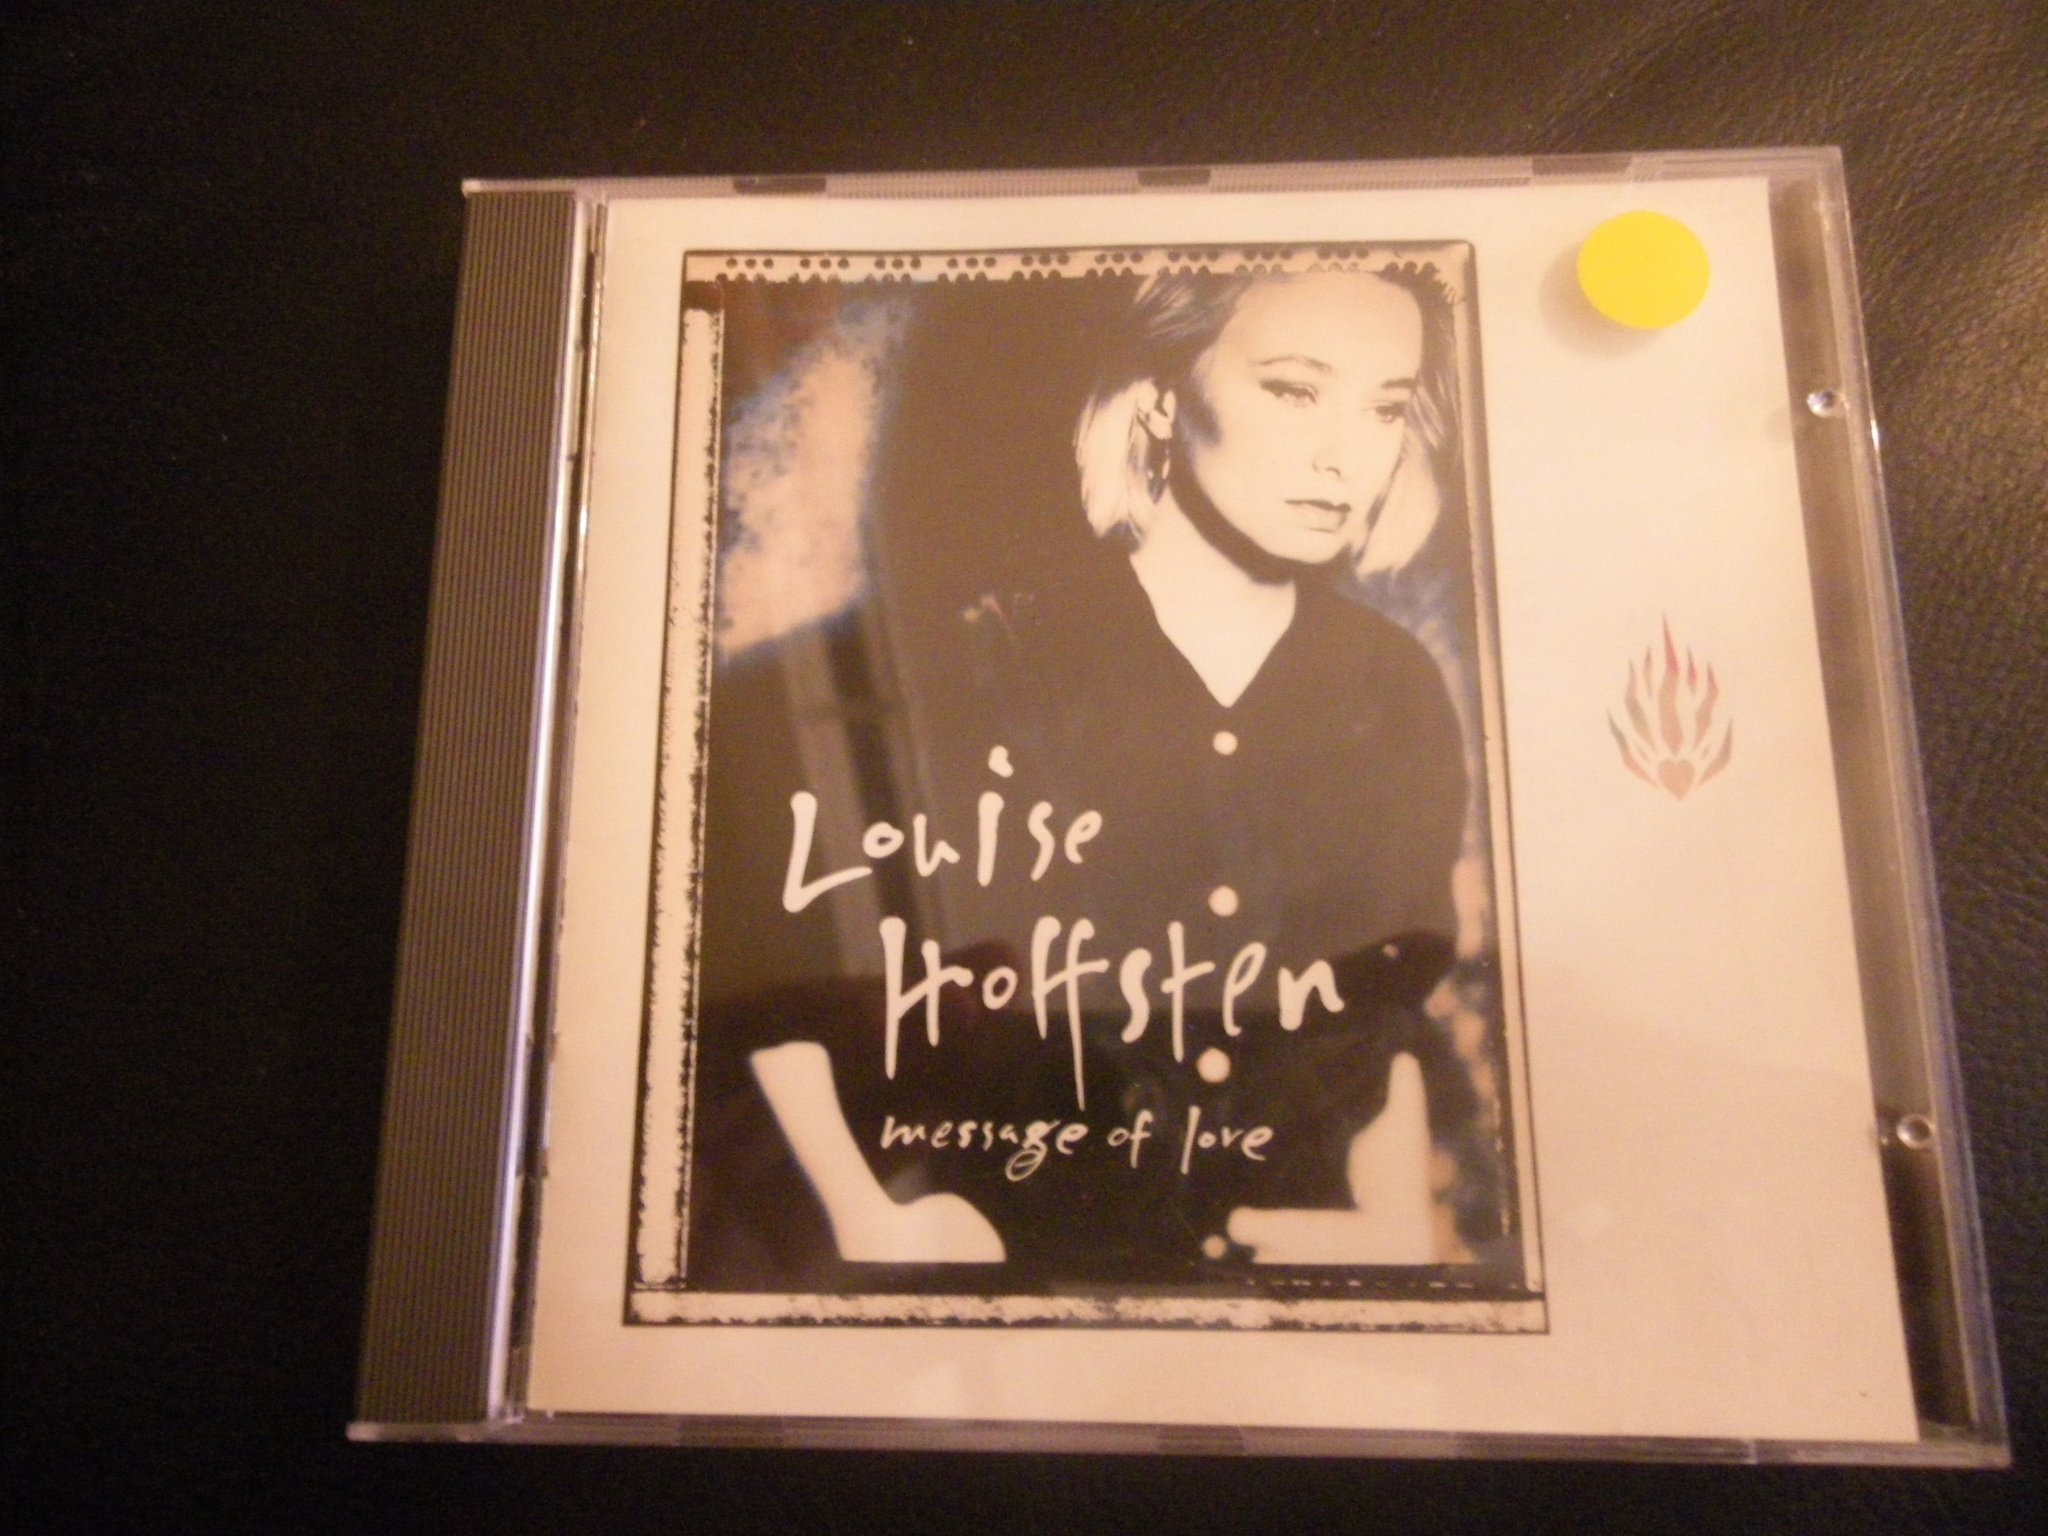 louise hoffsten message of love cd